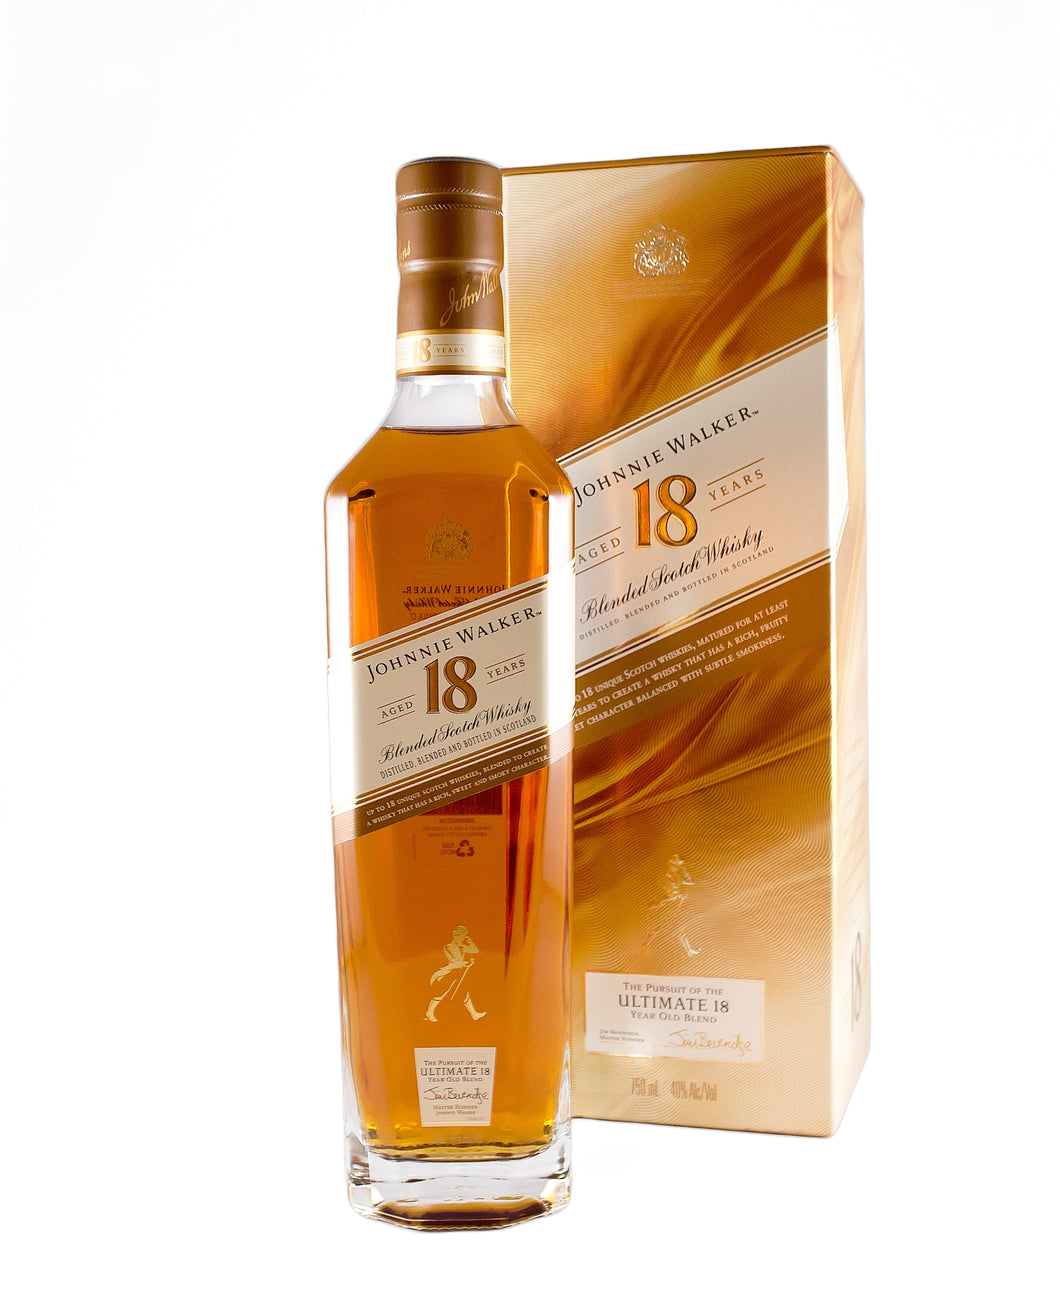 Johnnie Walker 18yo Blended Scotch Whisky (Scotland)